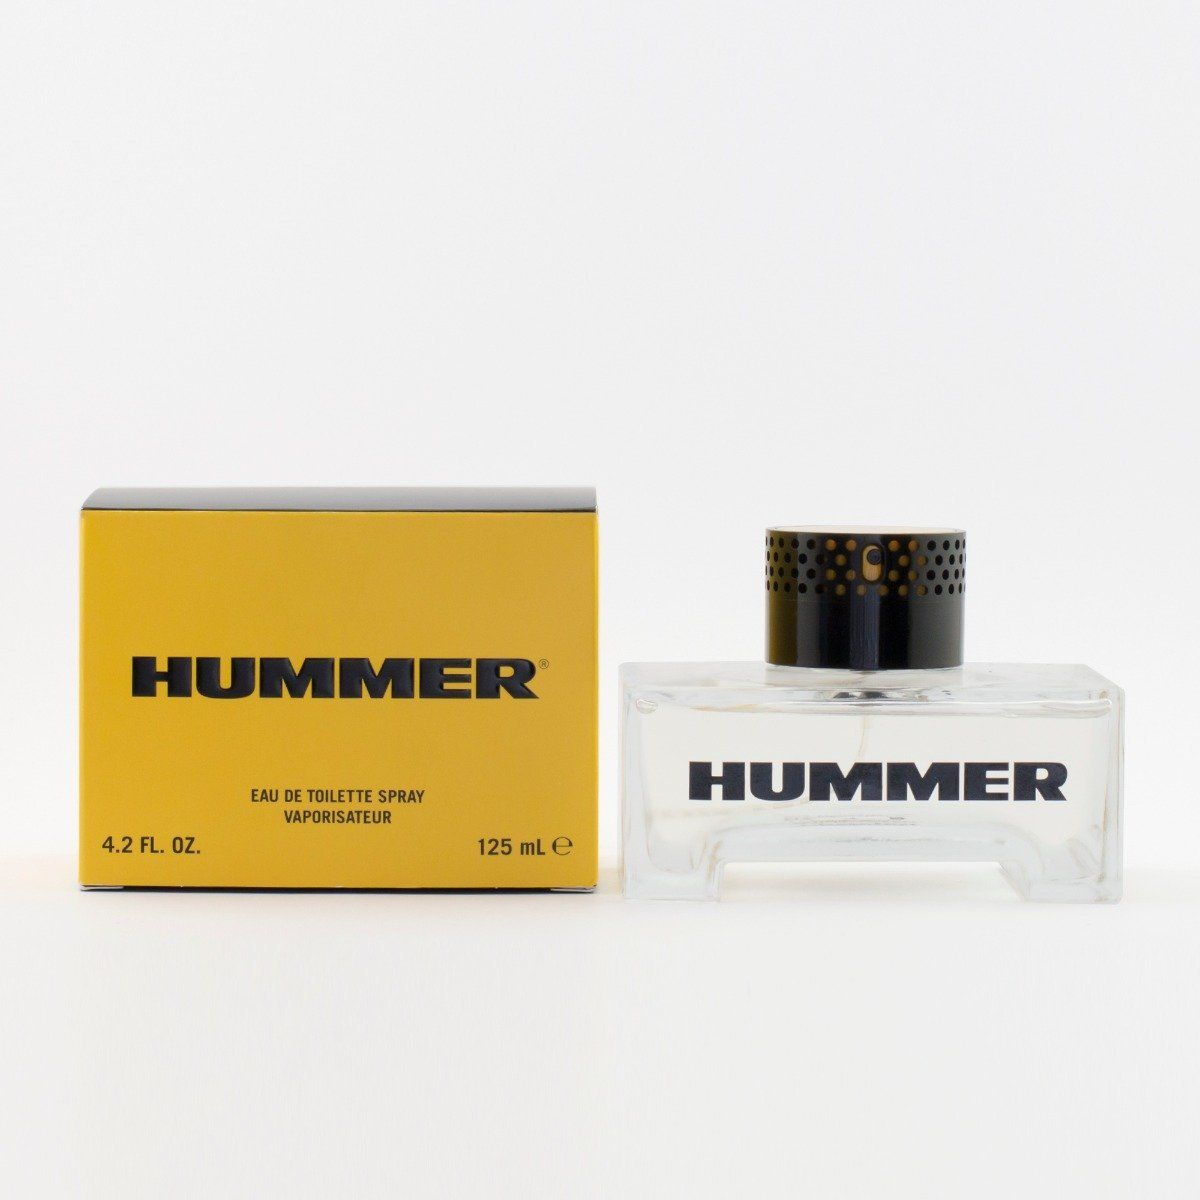 Perfume oil inspired by Hummer for Men